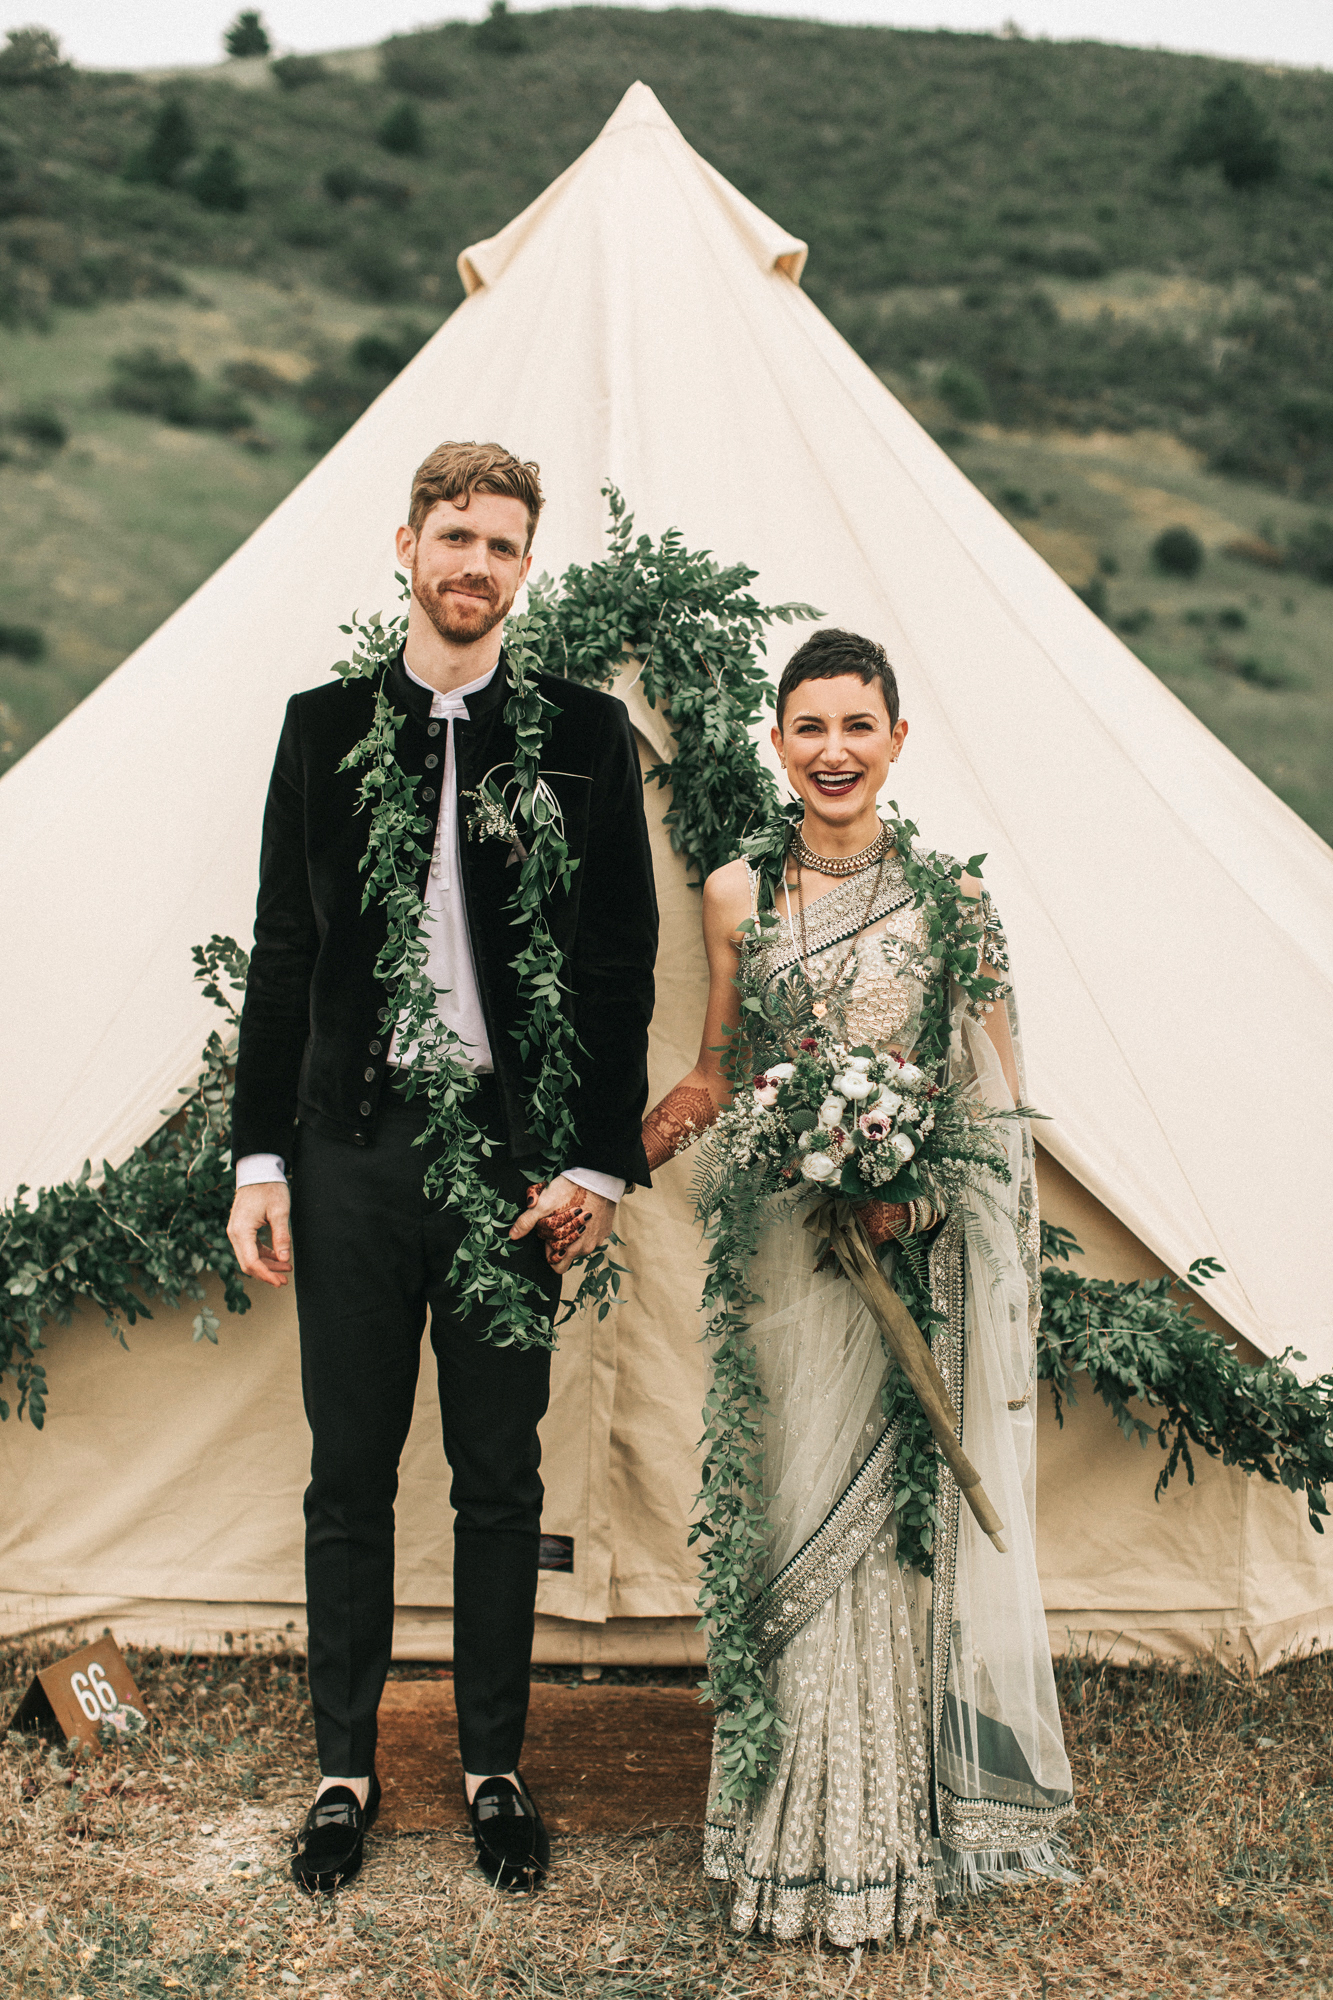 zai phil camping wedding couple bride groom tent